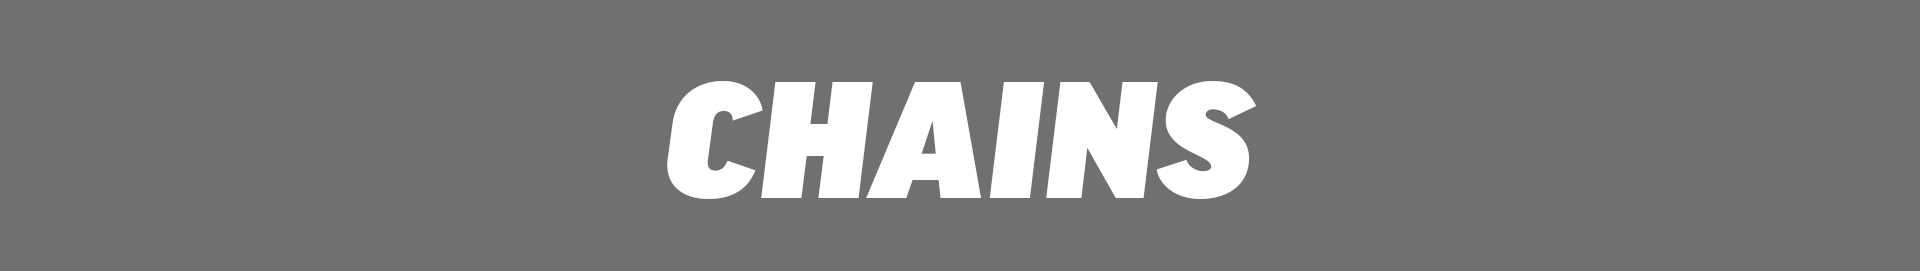 category-banner-chains.jpg